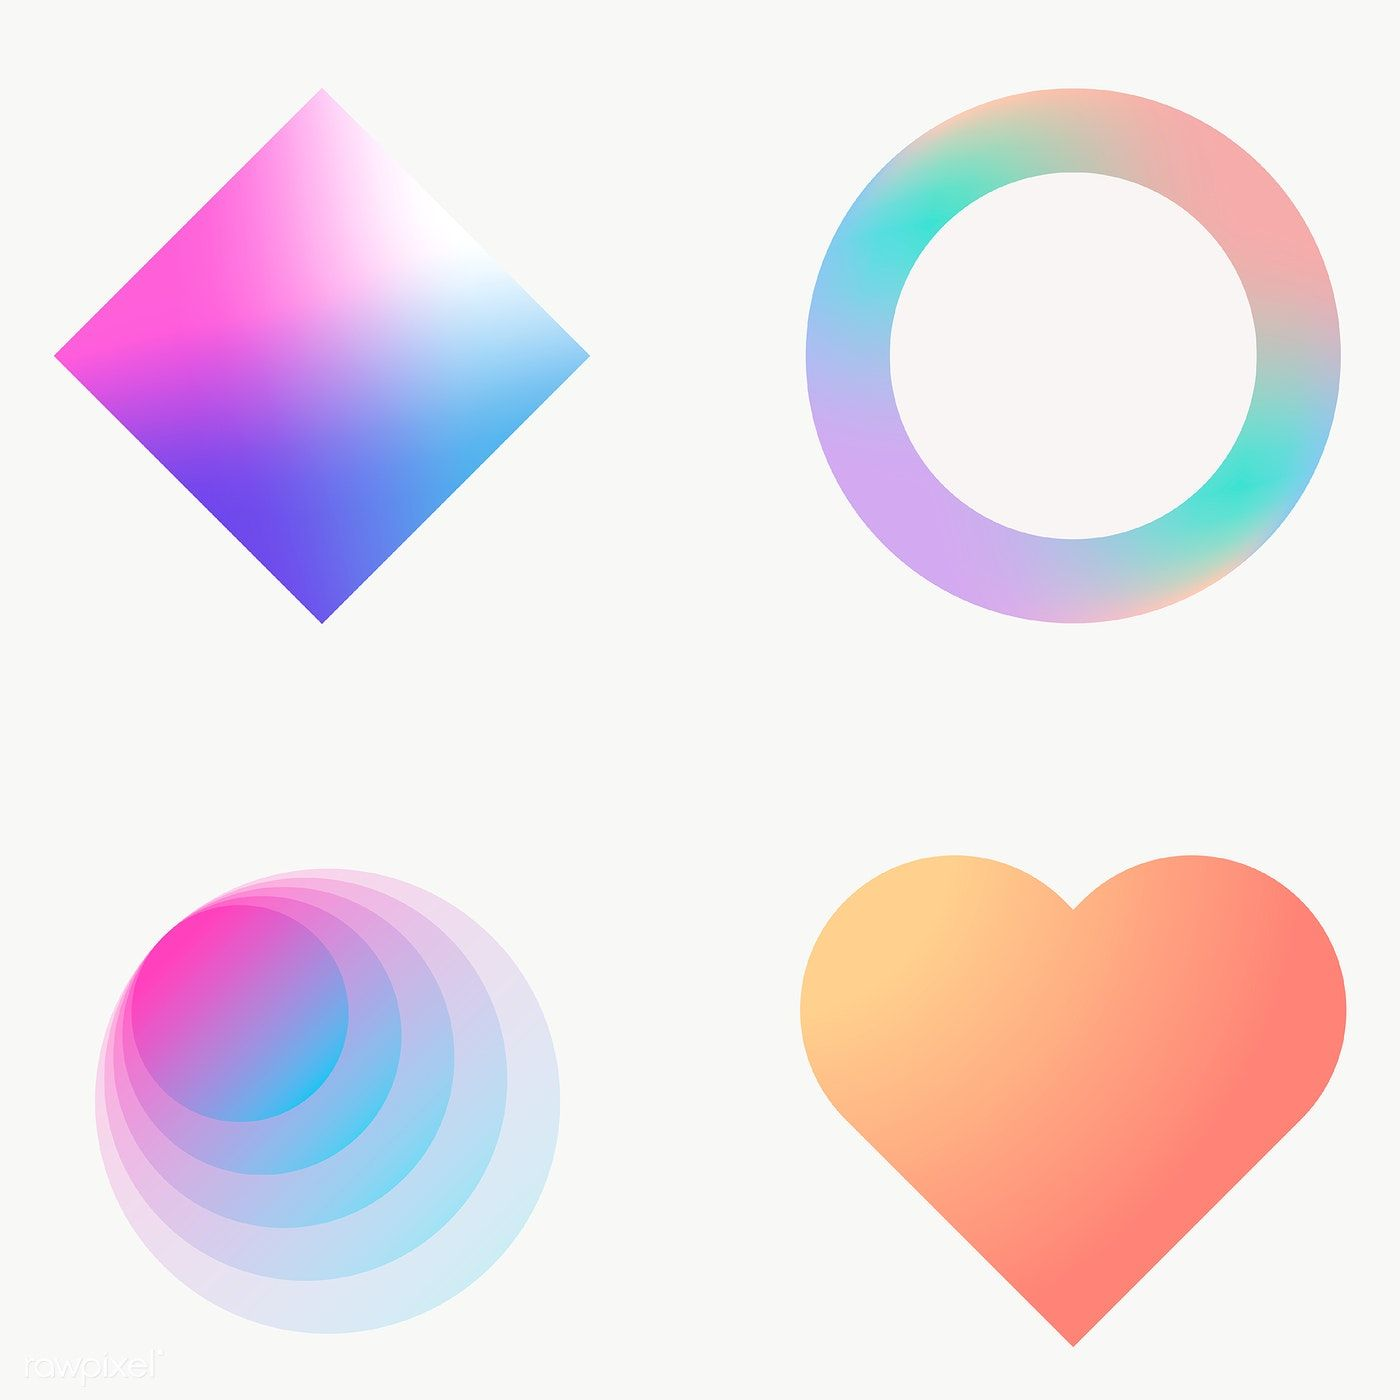 Colorful Gradient Elements Collection Transparent Png Premium Image By Rawpixel Com Nunny Image Fun Png Gradient